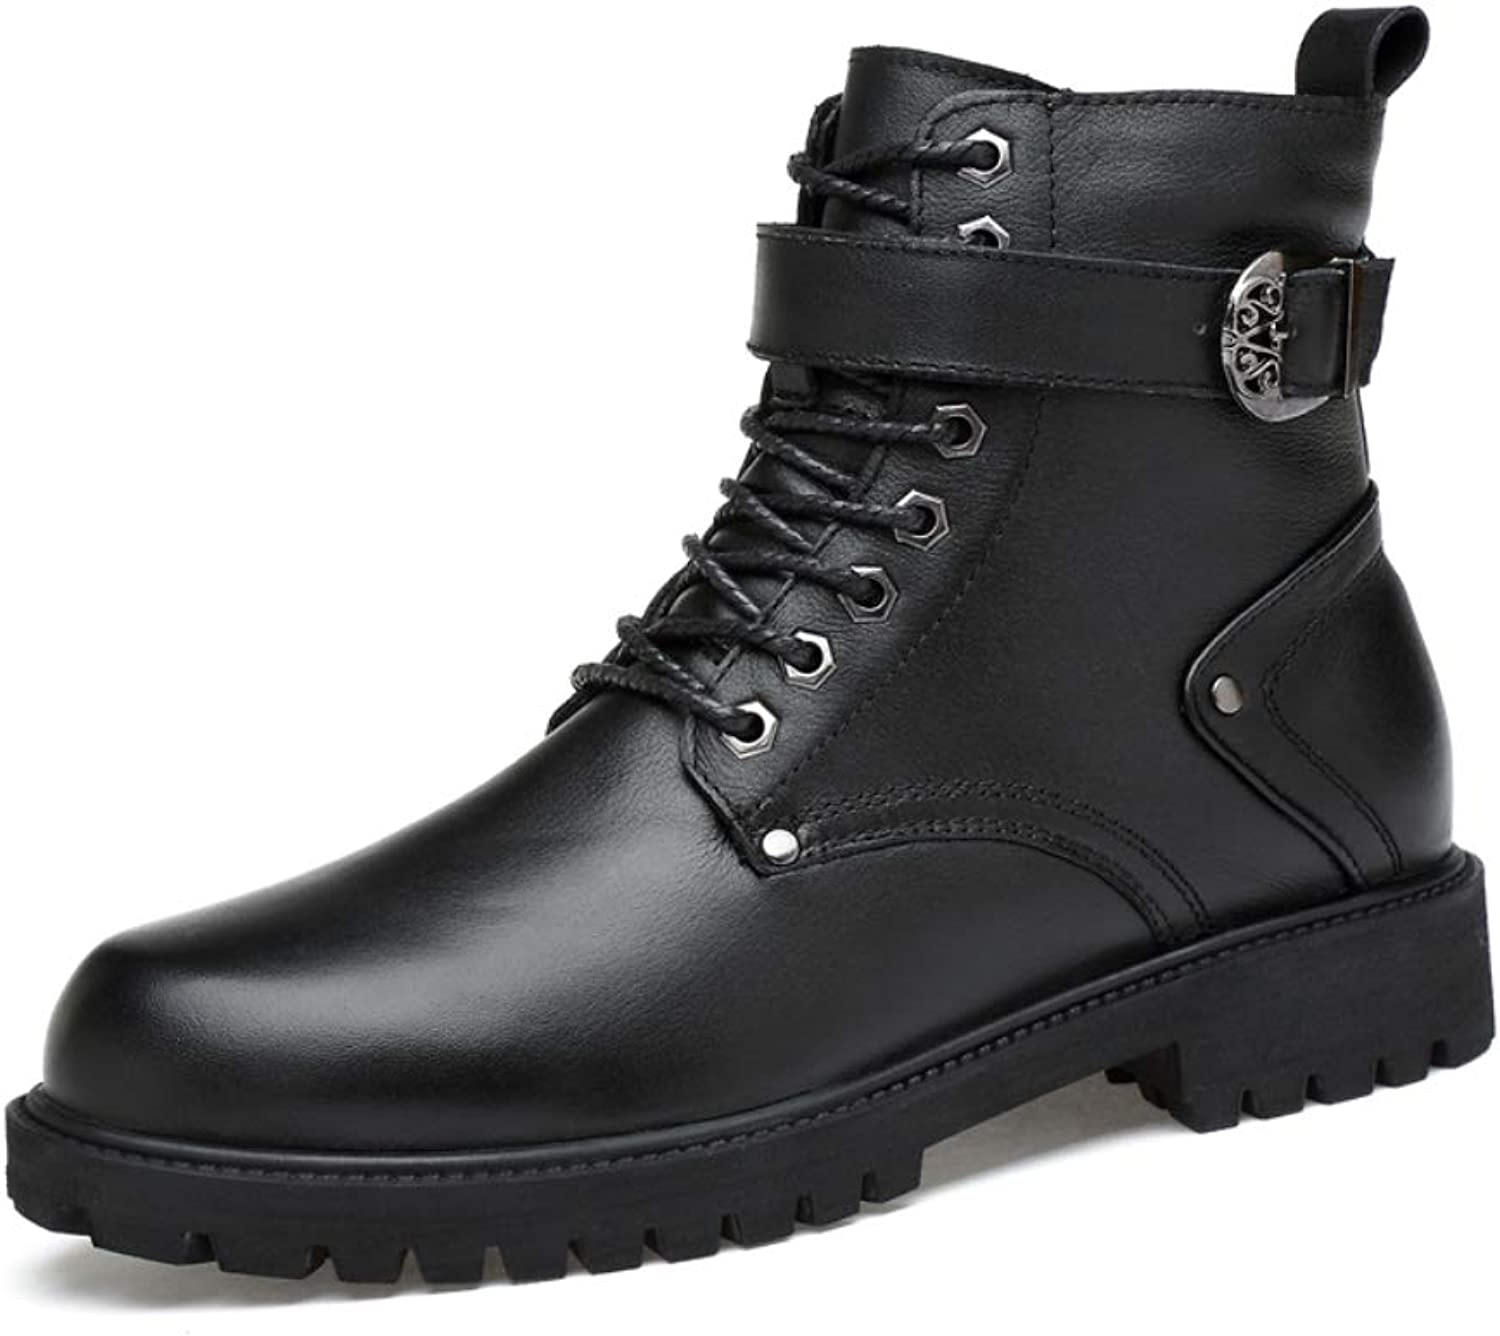 Men's Leather Warm Cotton Boots Non-Slip Waterproof Motorcycle Boots